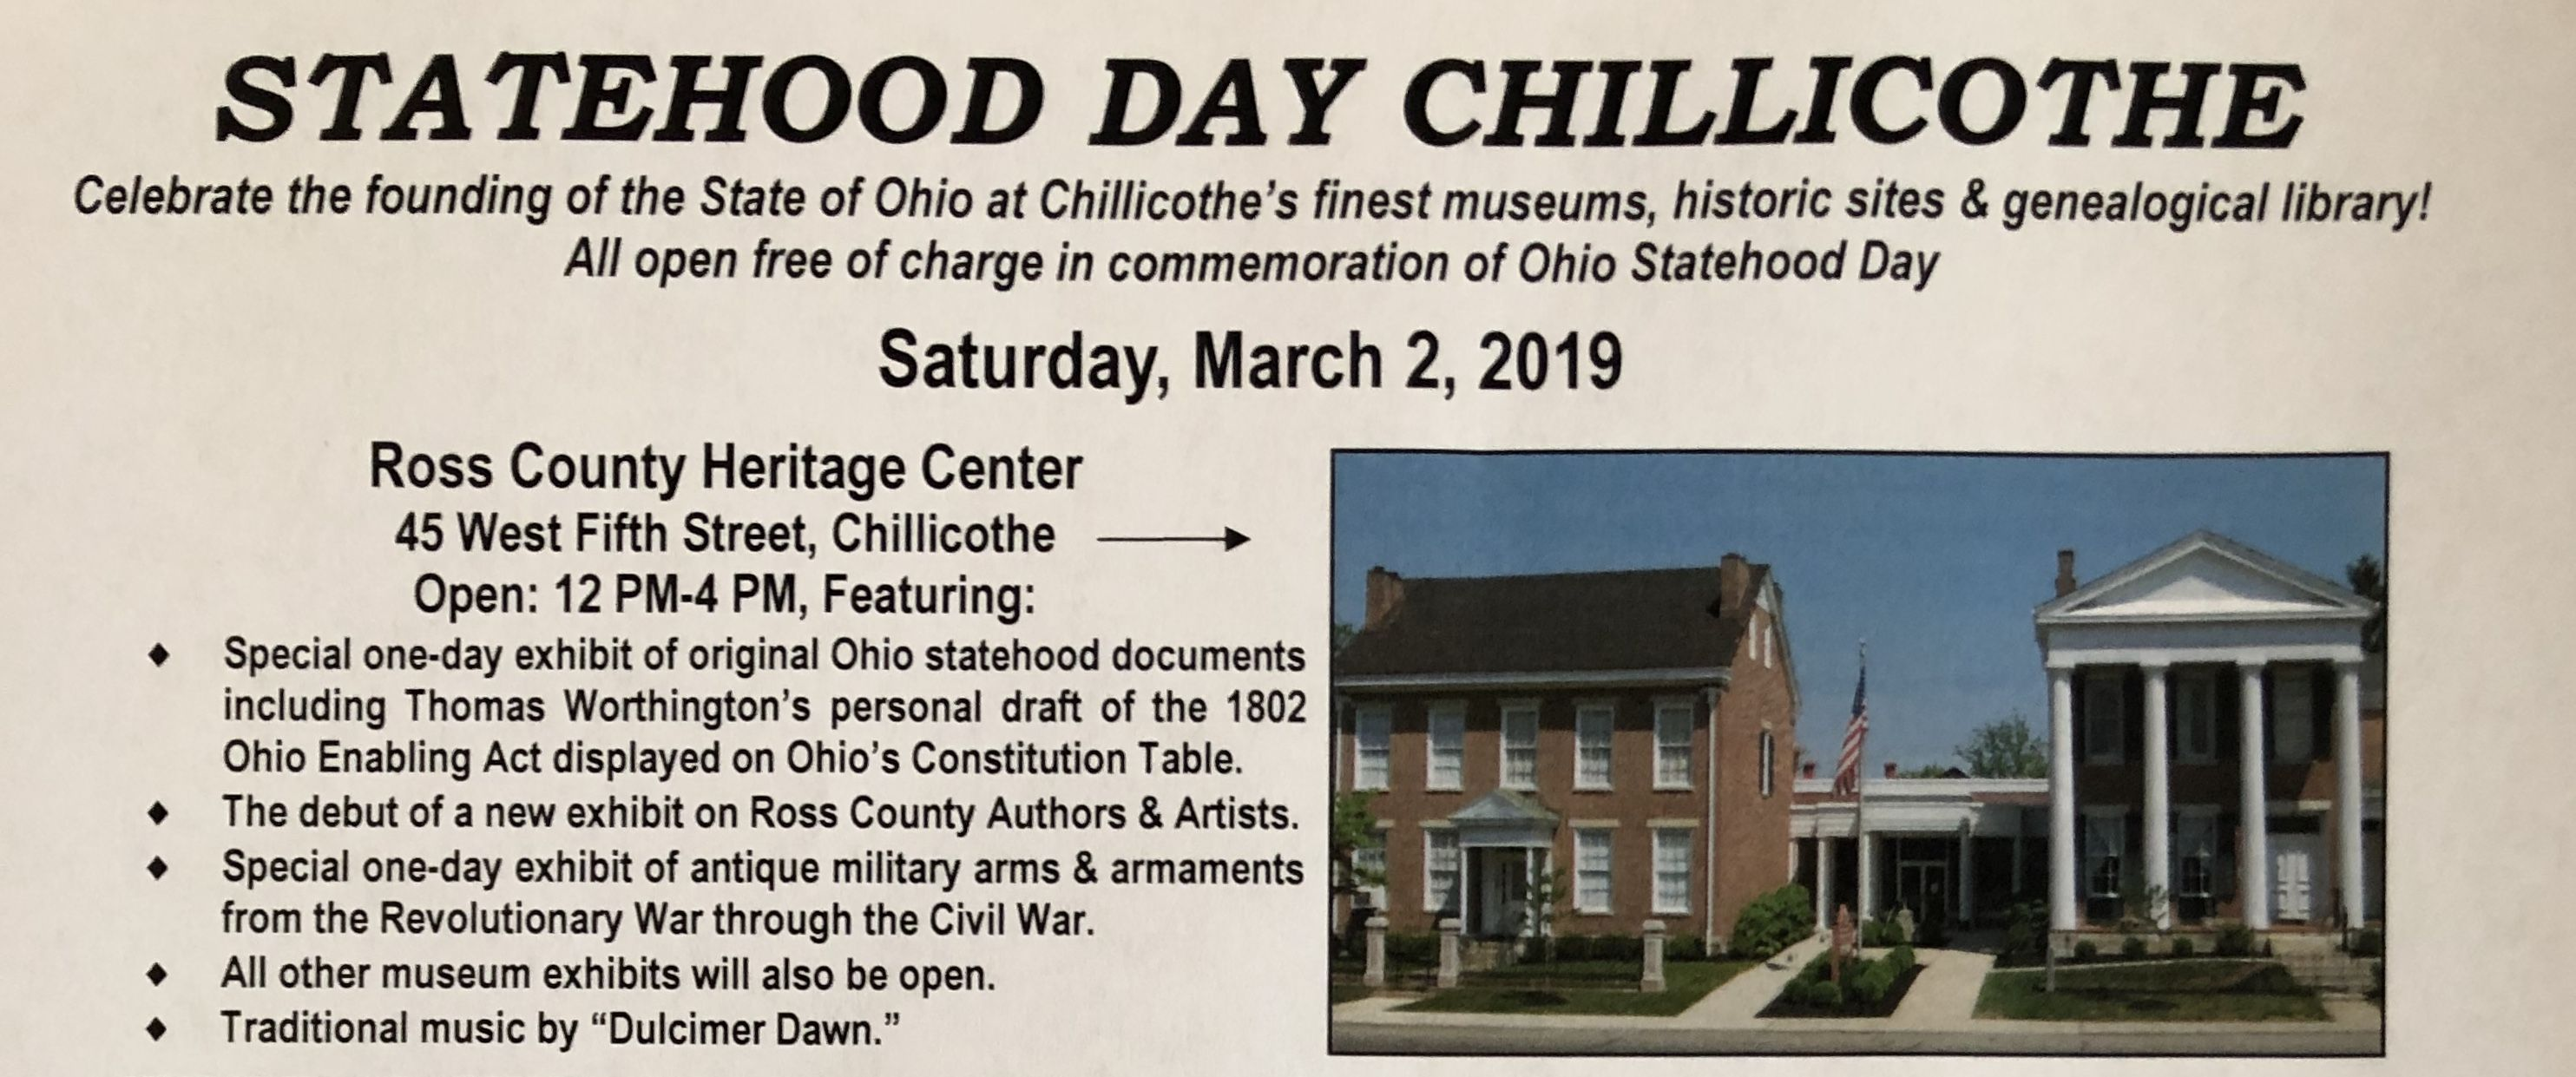 Statehood Day Will Be March 2 Free Admission To The